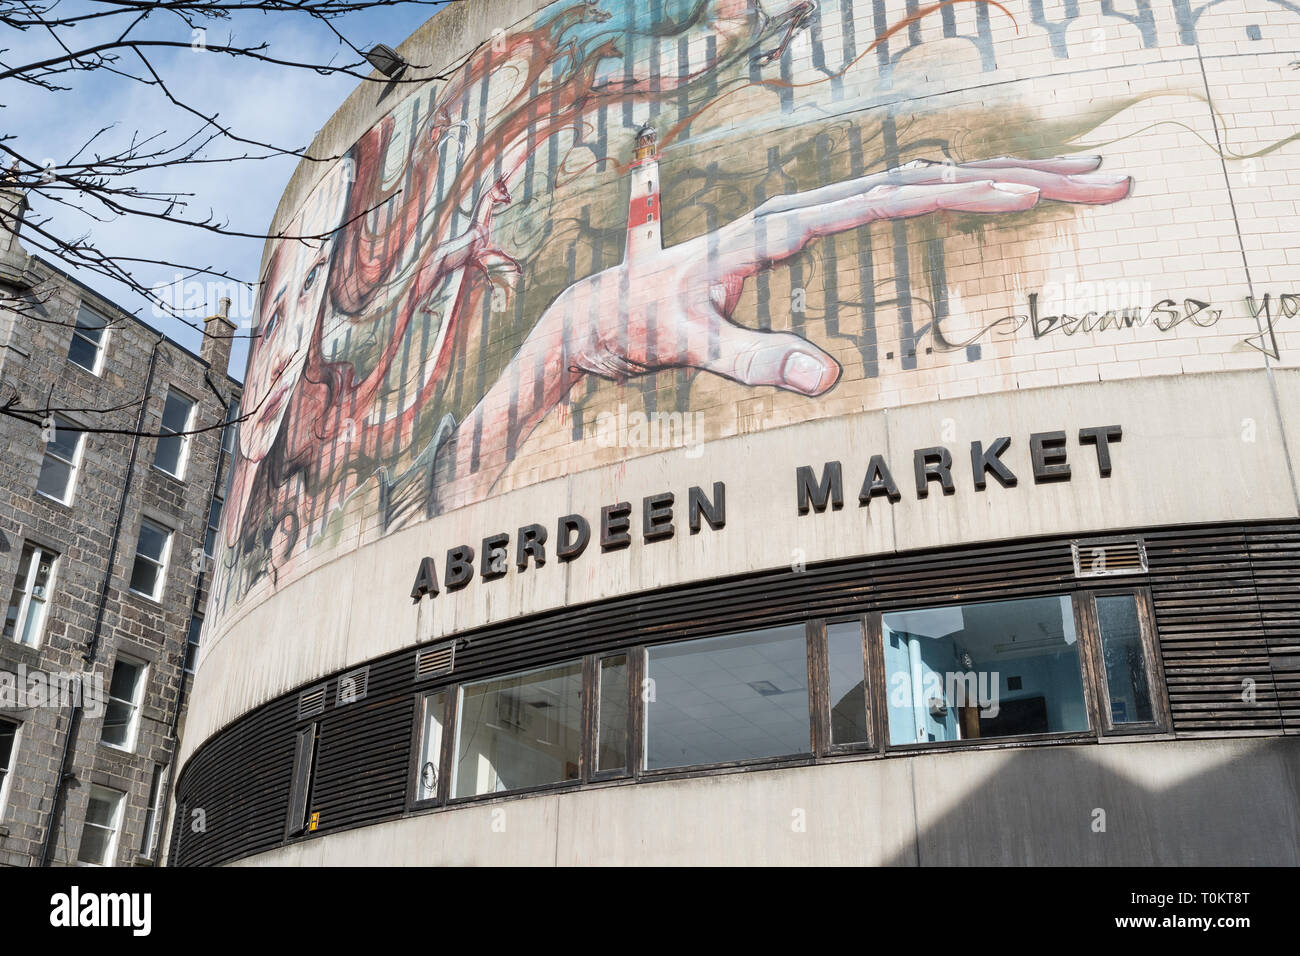 Aberdeen indoor market building with street art by Herakut, The Green, Aberdeen, Scotland, UK - Stock Image